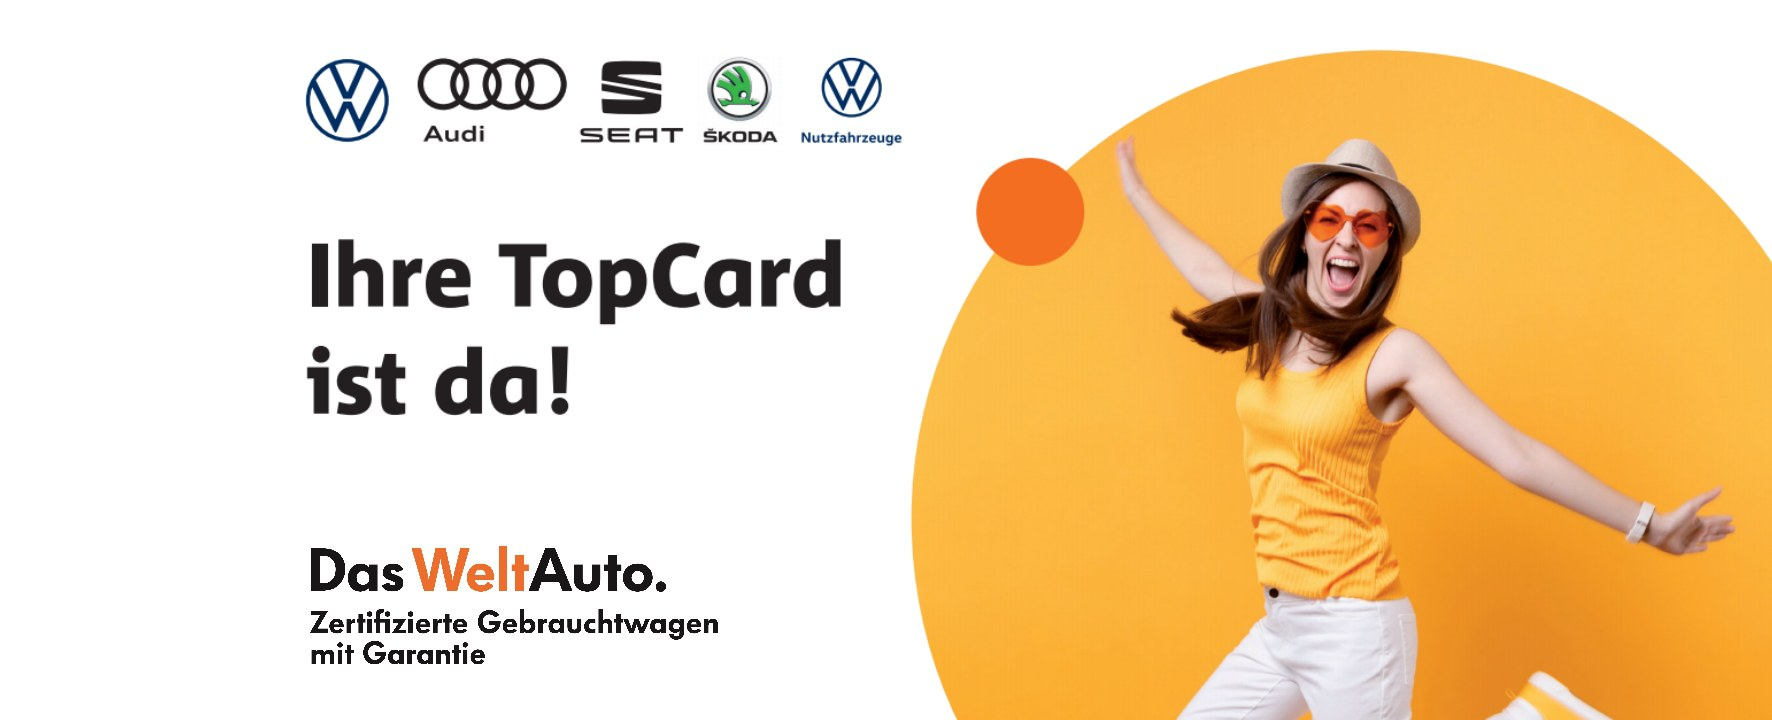 topcard-stage